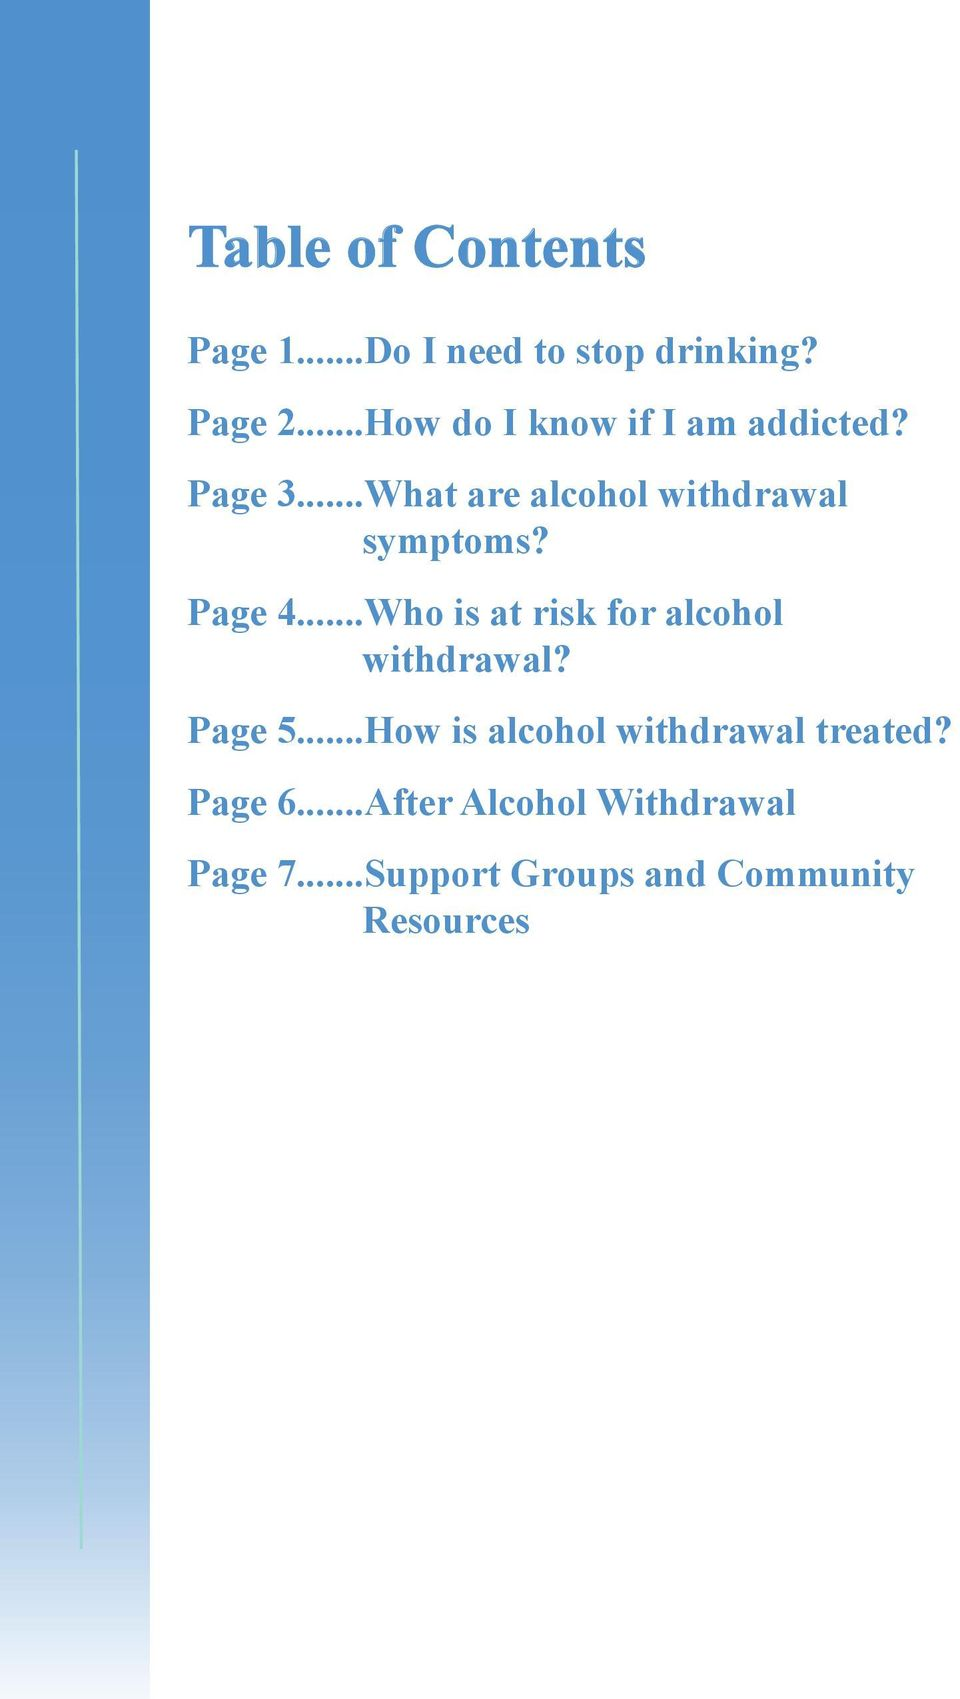 Page 4...Who is at risk for alcohol withdrawal? Page 5.